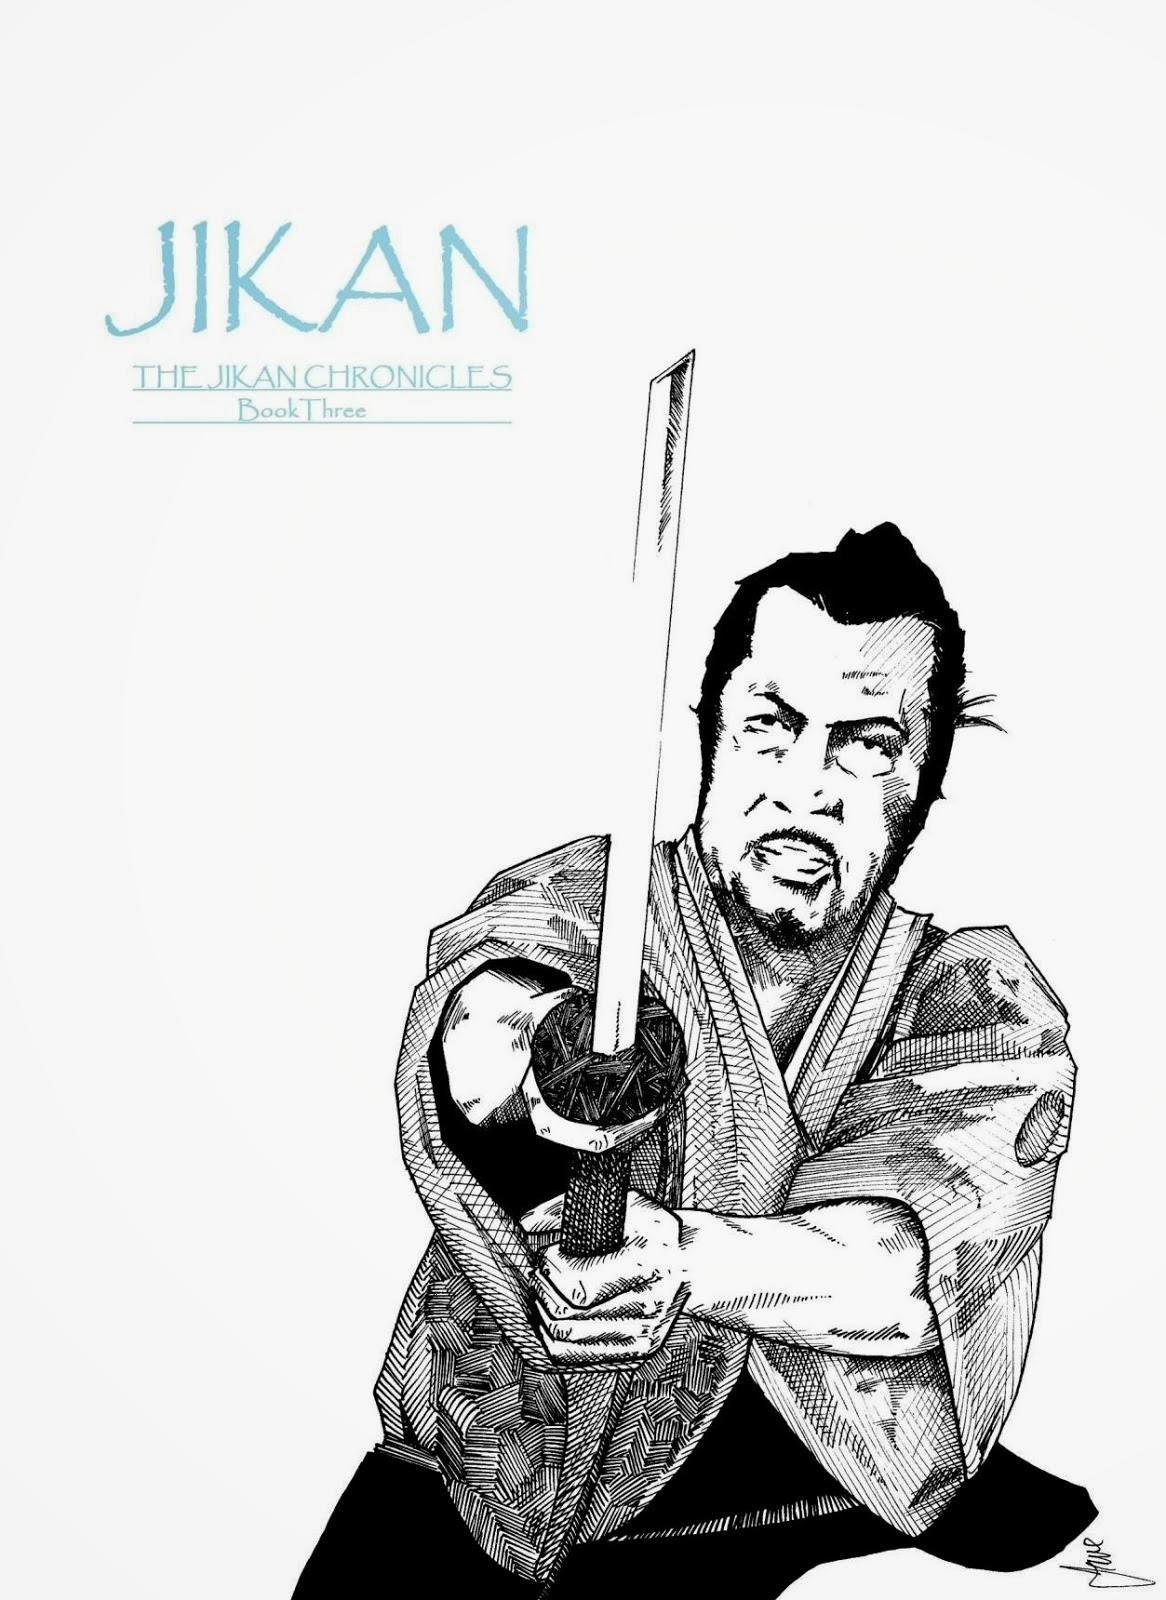 The JIkan Chronicles Book Three